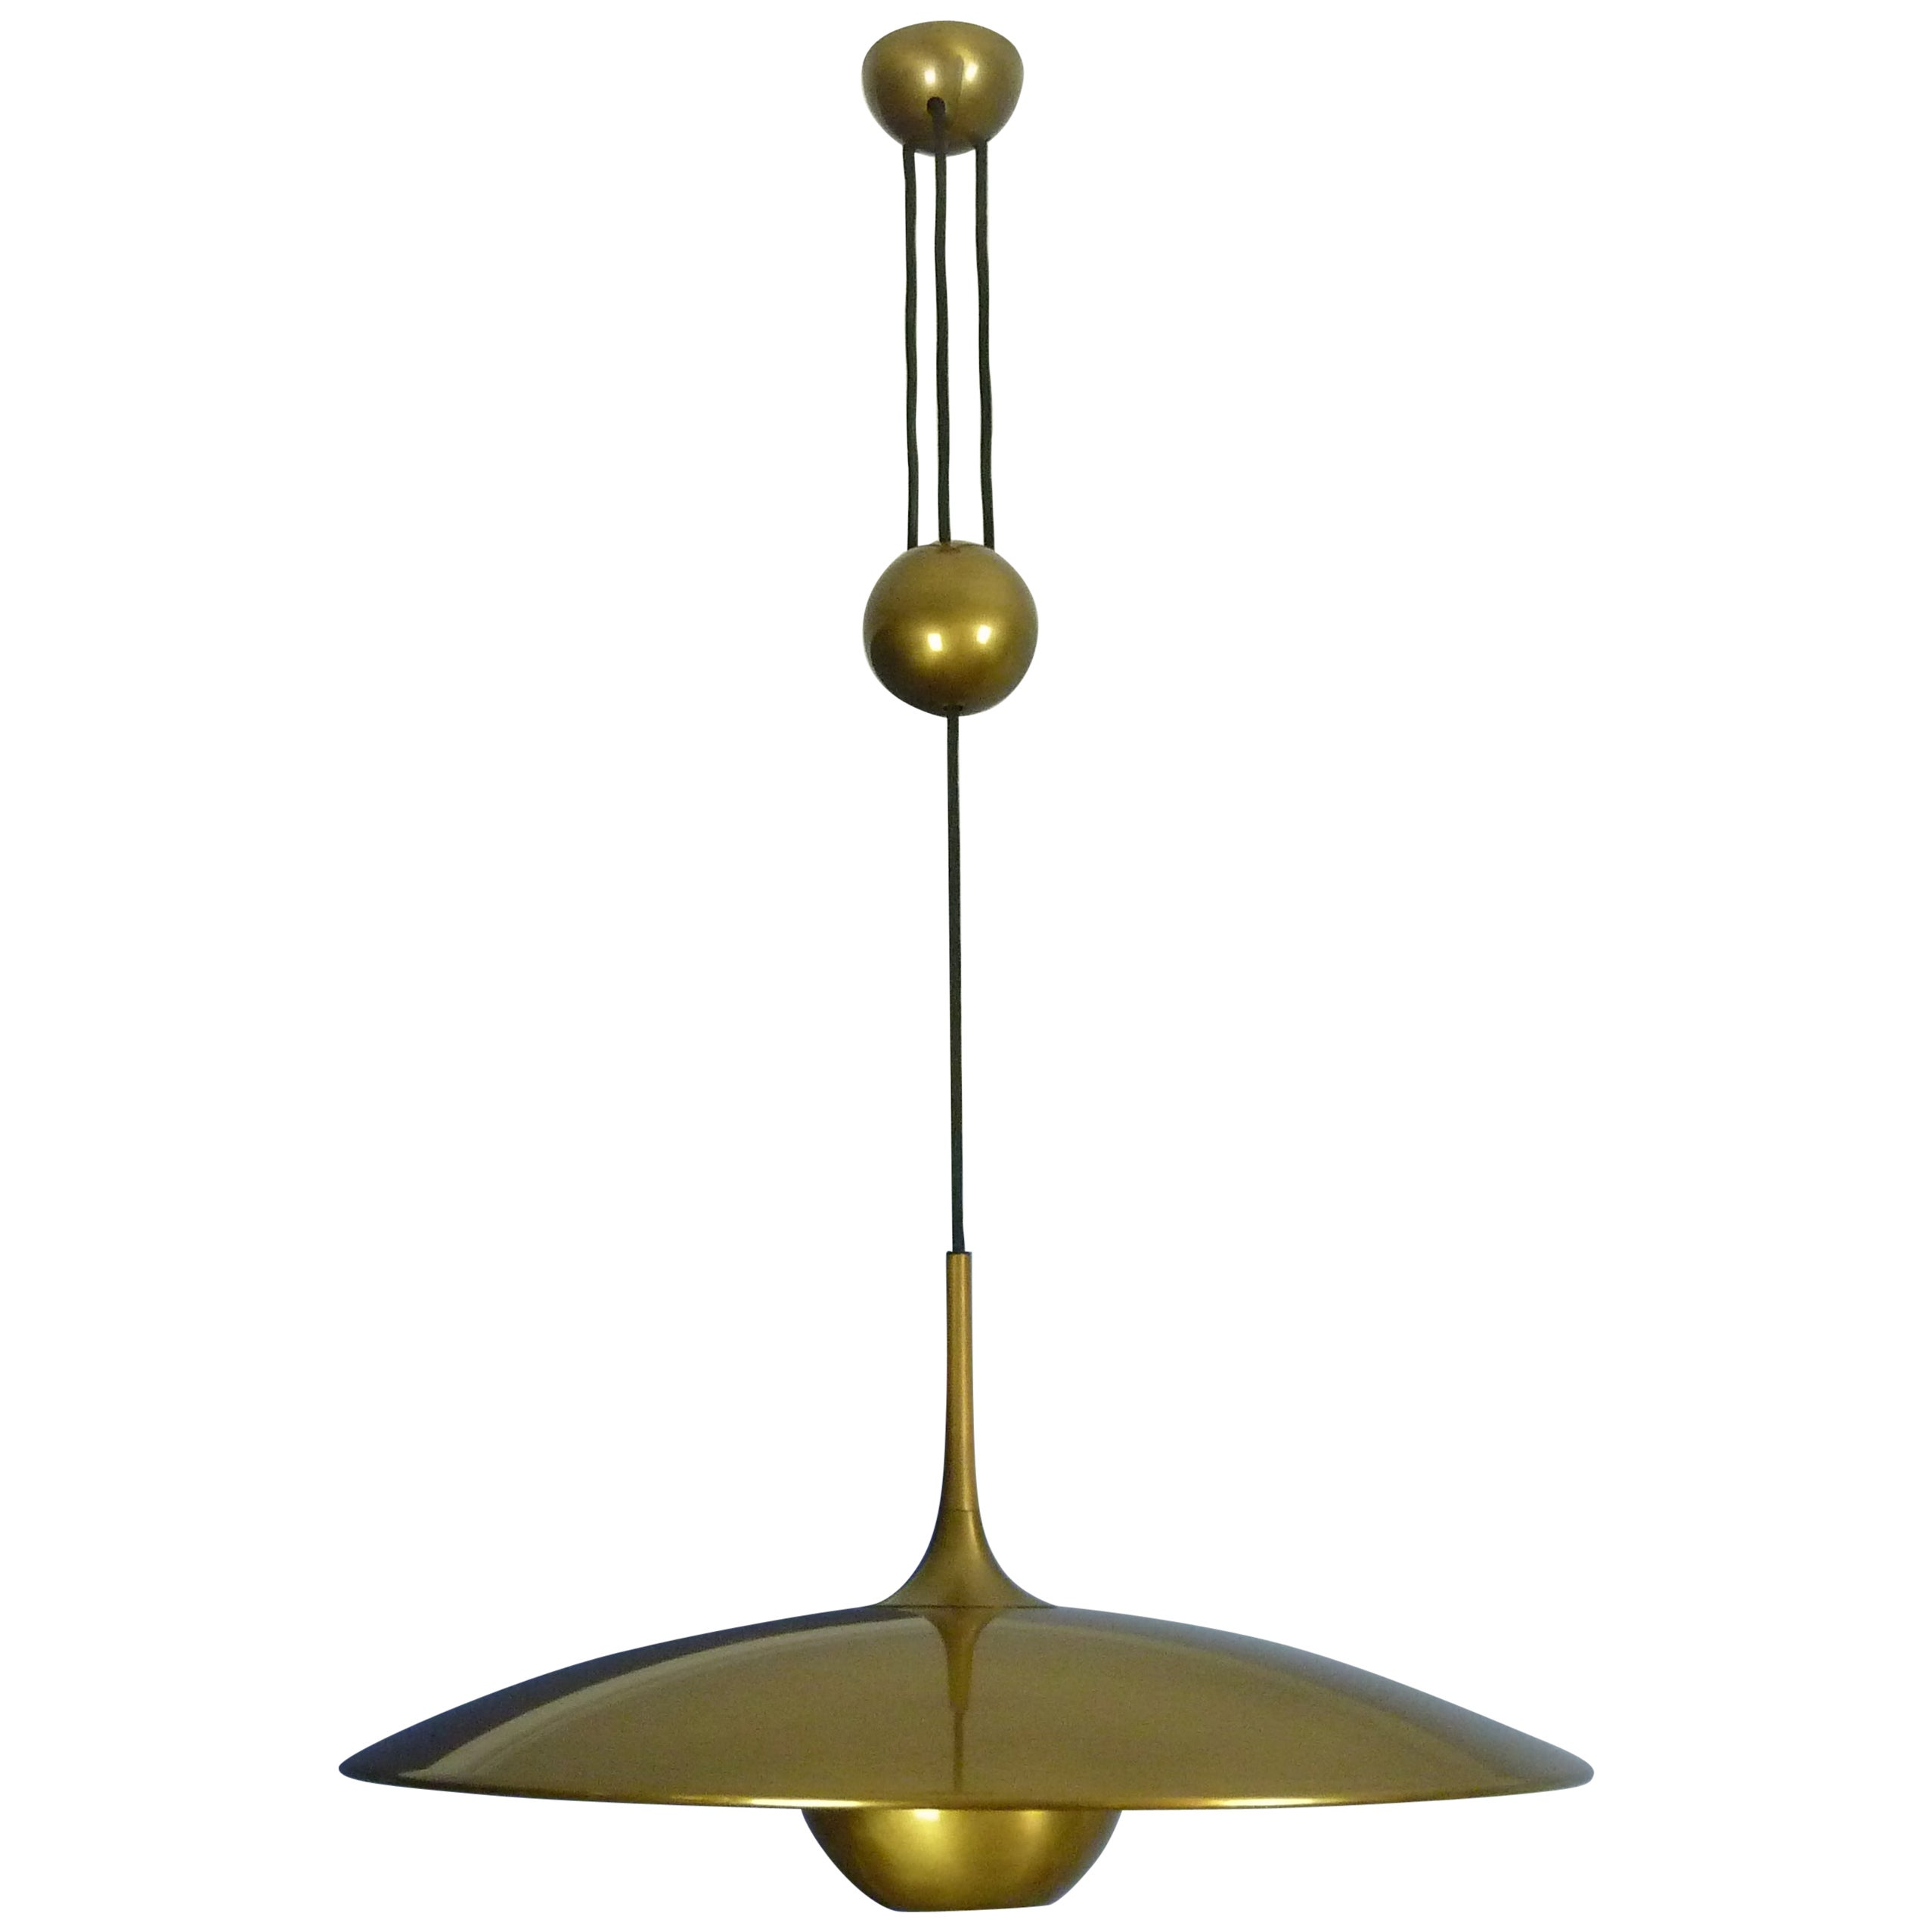 Adjustable Brass Pendant Onos55 by Florian Schulz with a Central Counterweight